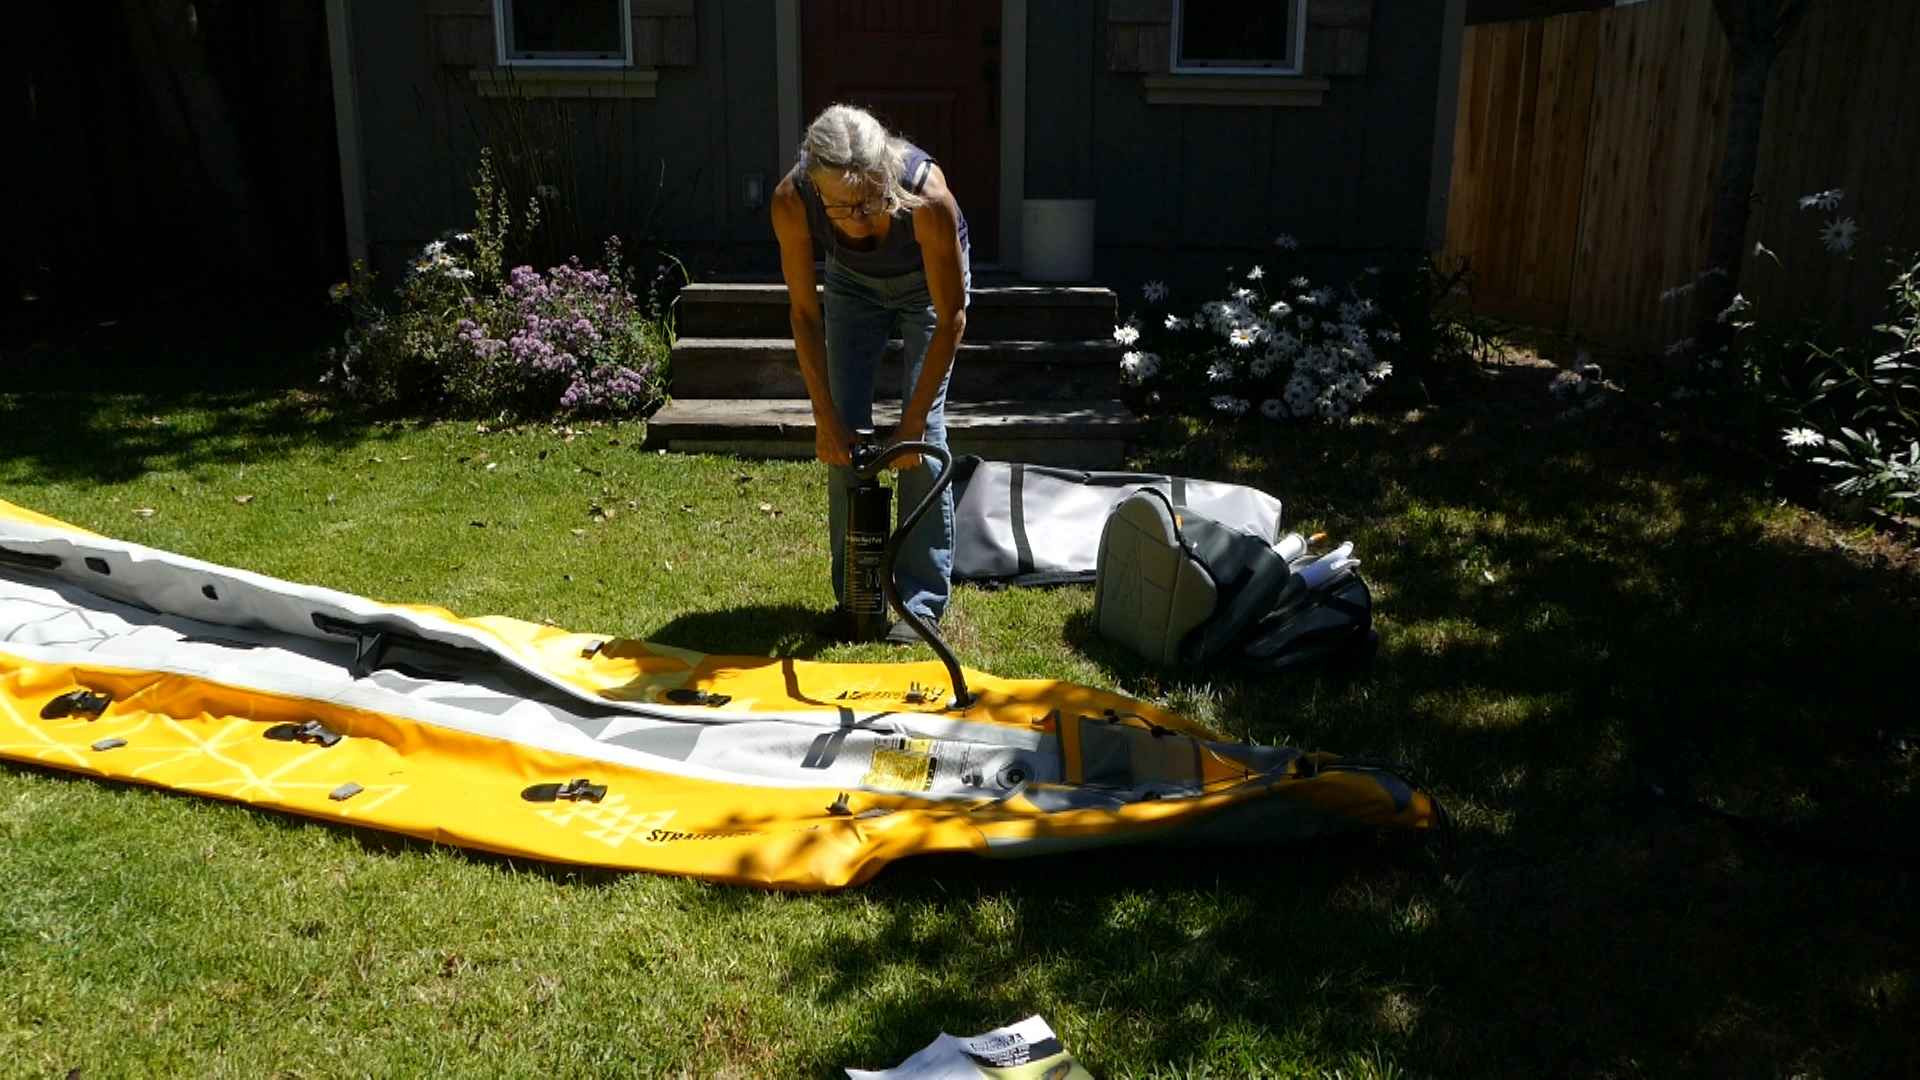 Inflating the side chamber